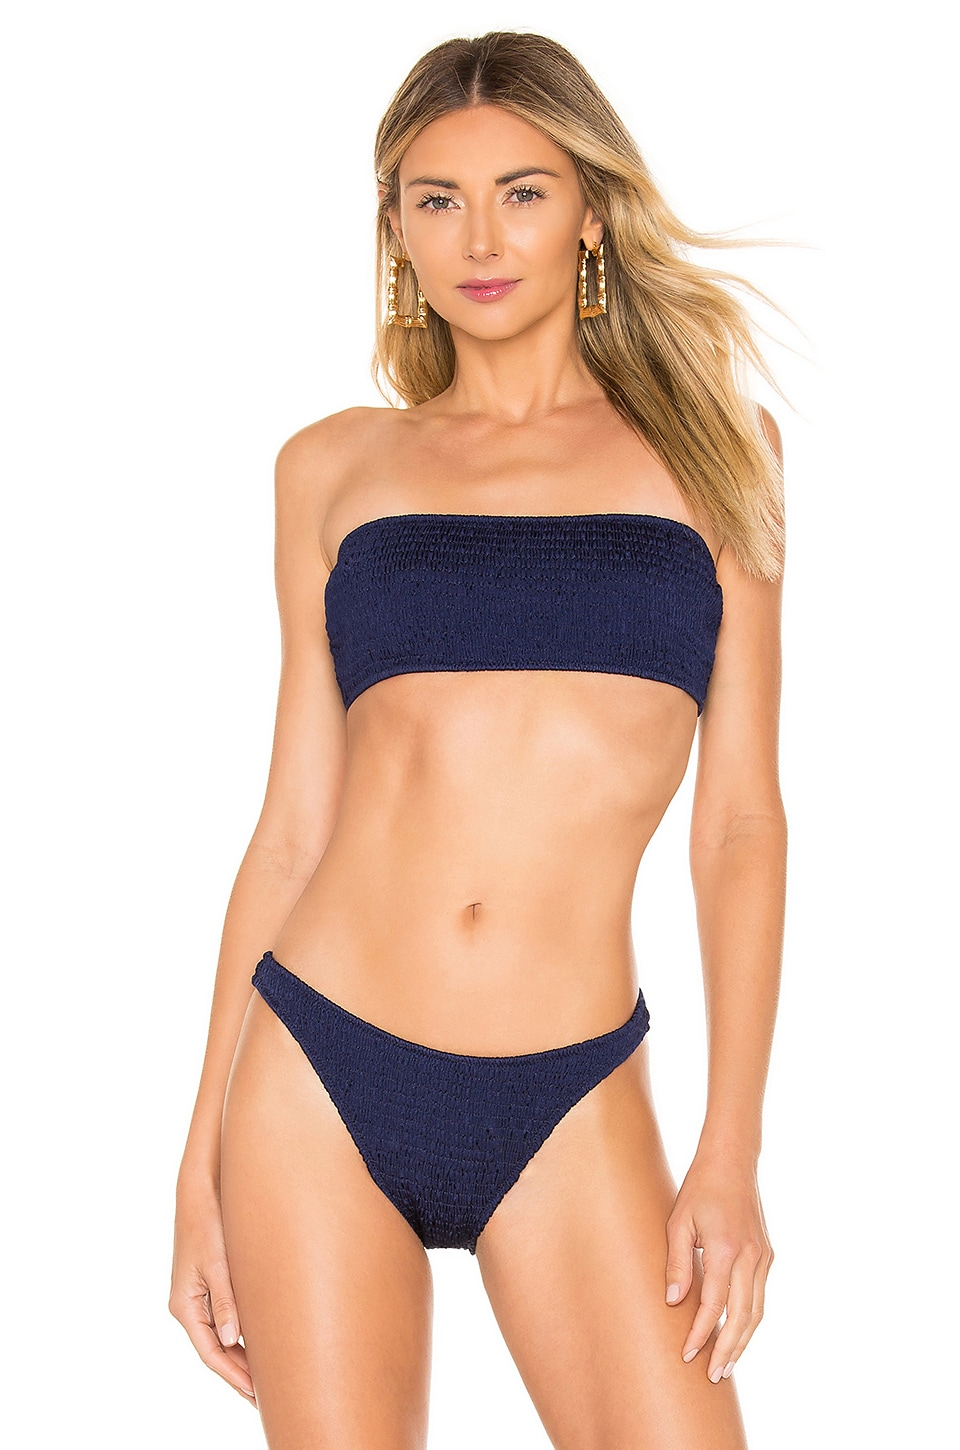 Solid & Striped Annabelle Ruched Bikini Top in Midnight